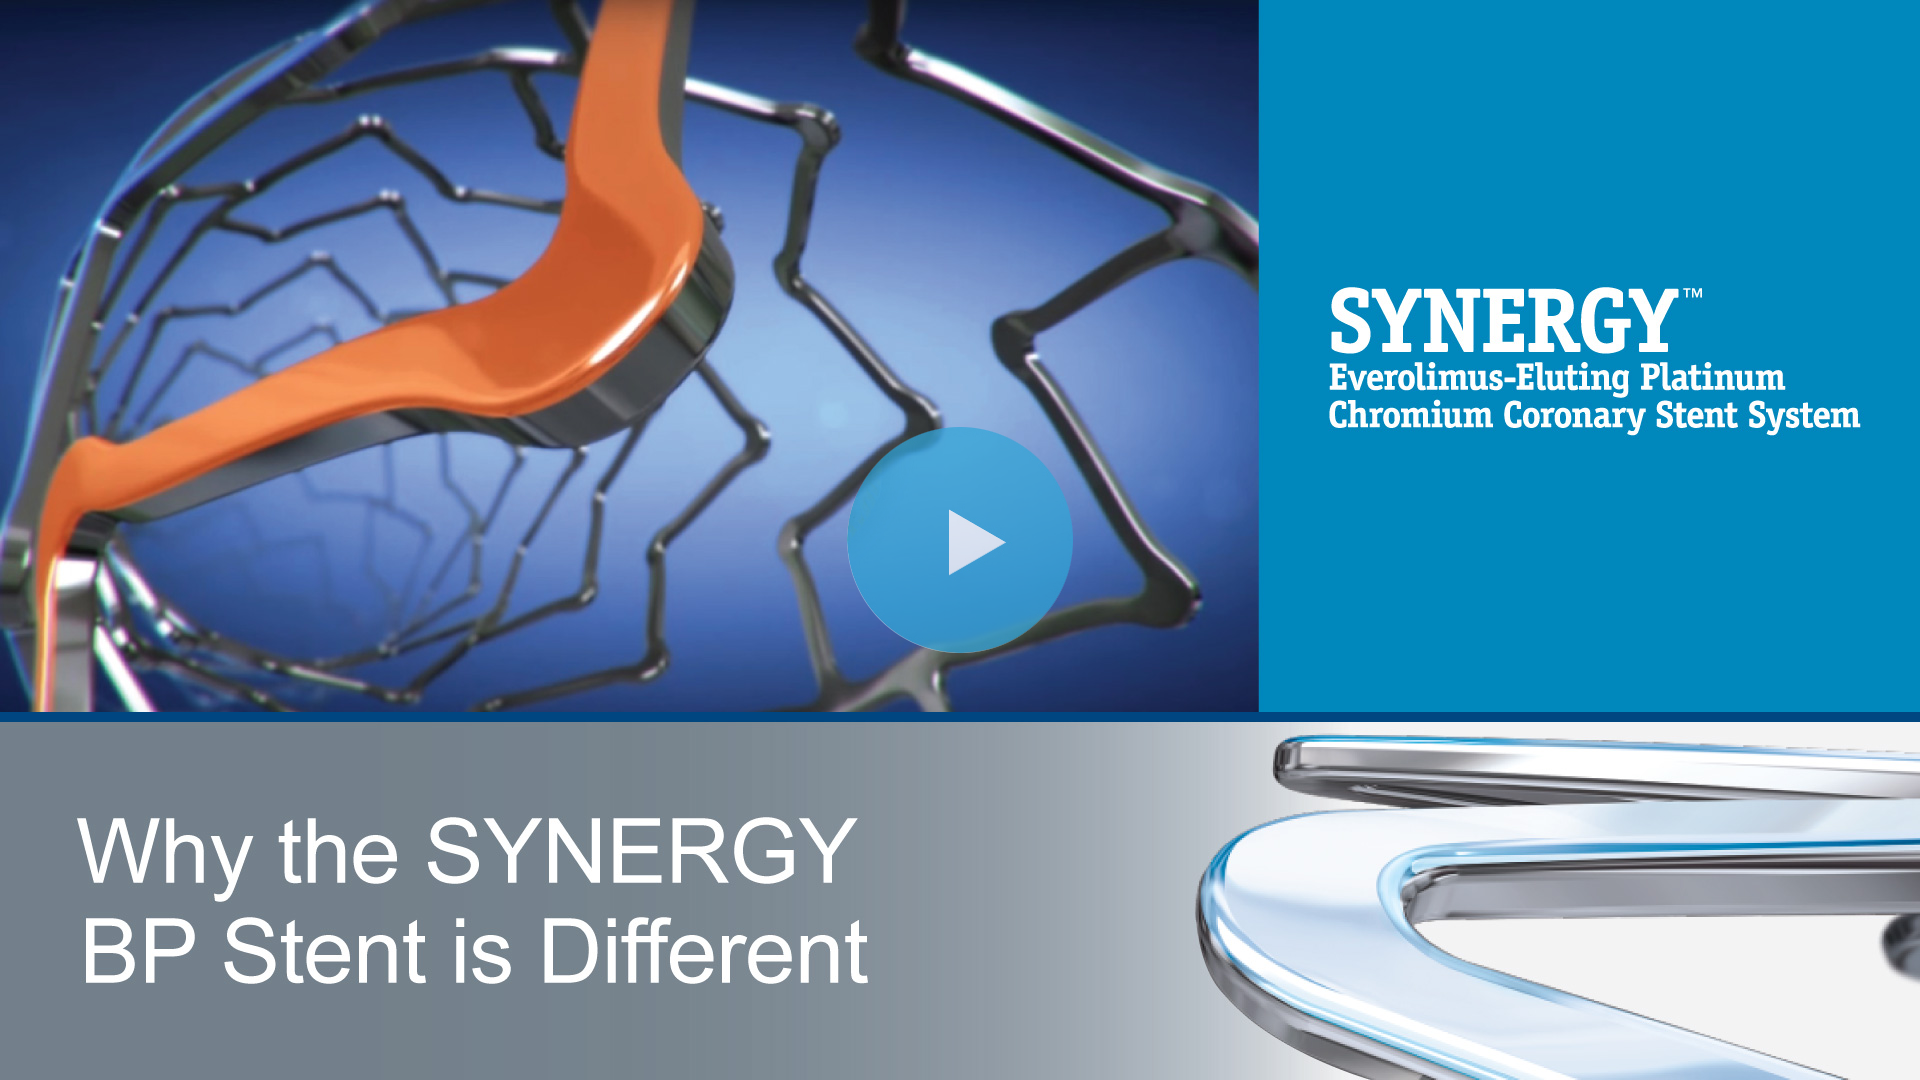 Why the SYNERGY BP Stent is Different